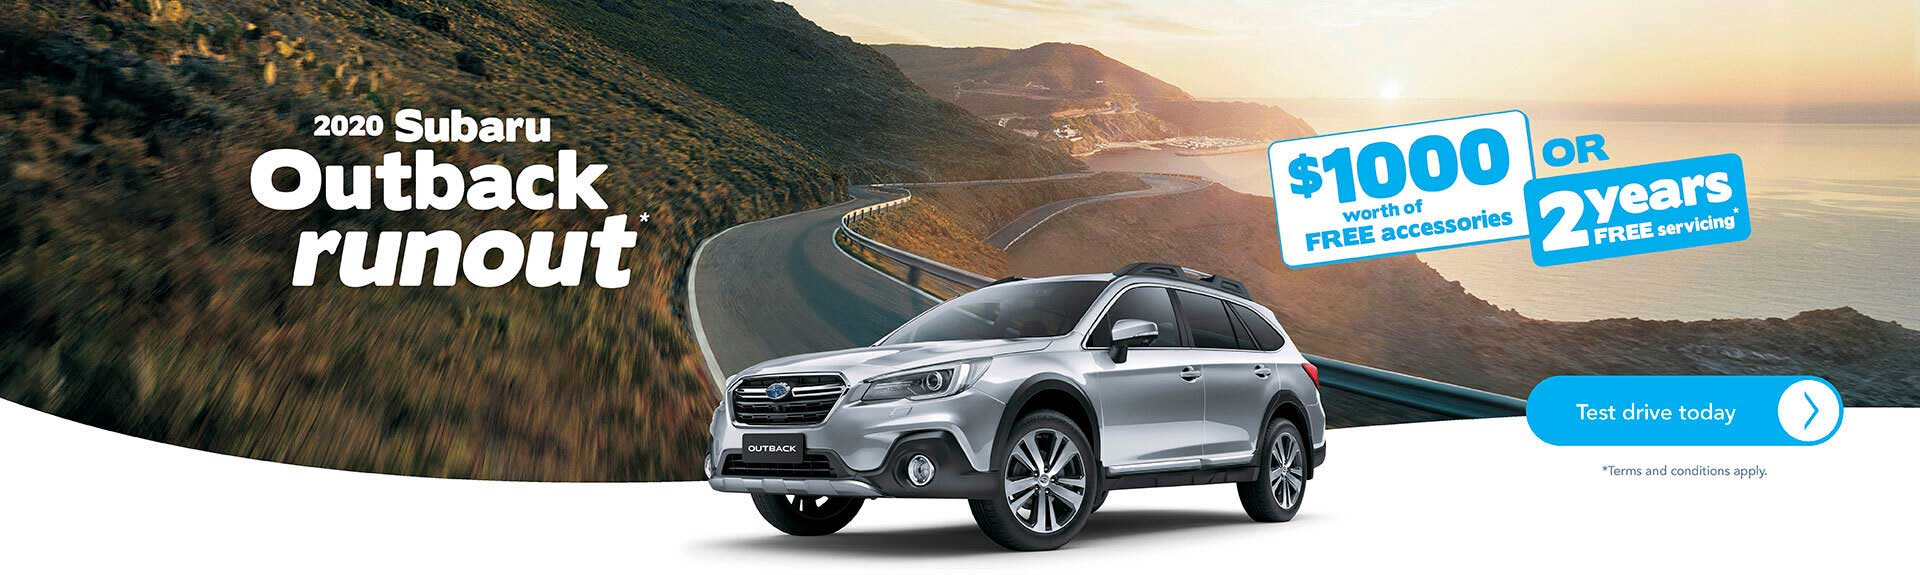 Subaru Outback Offer